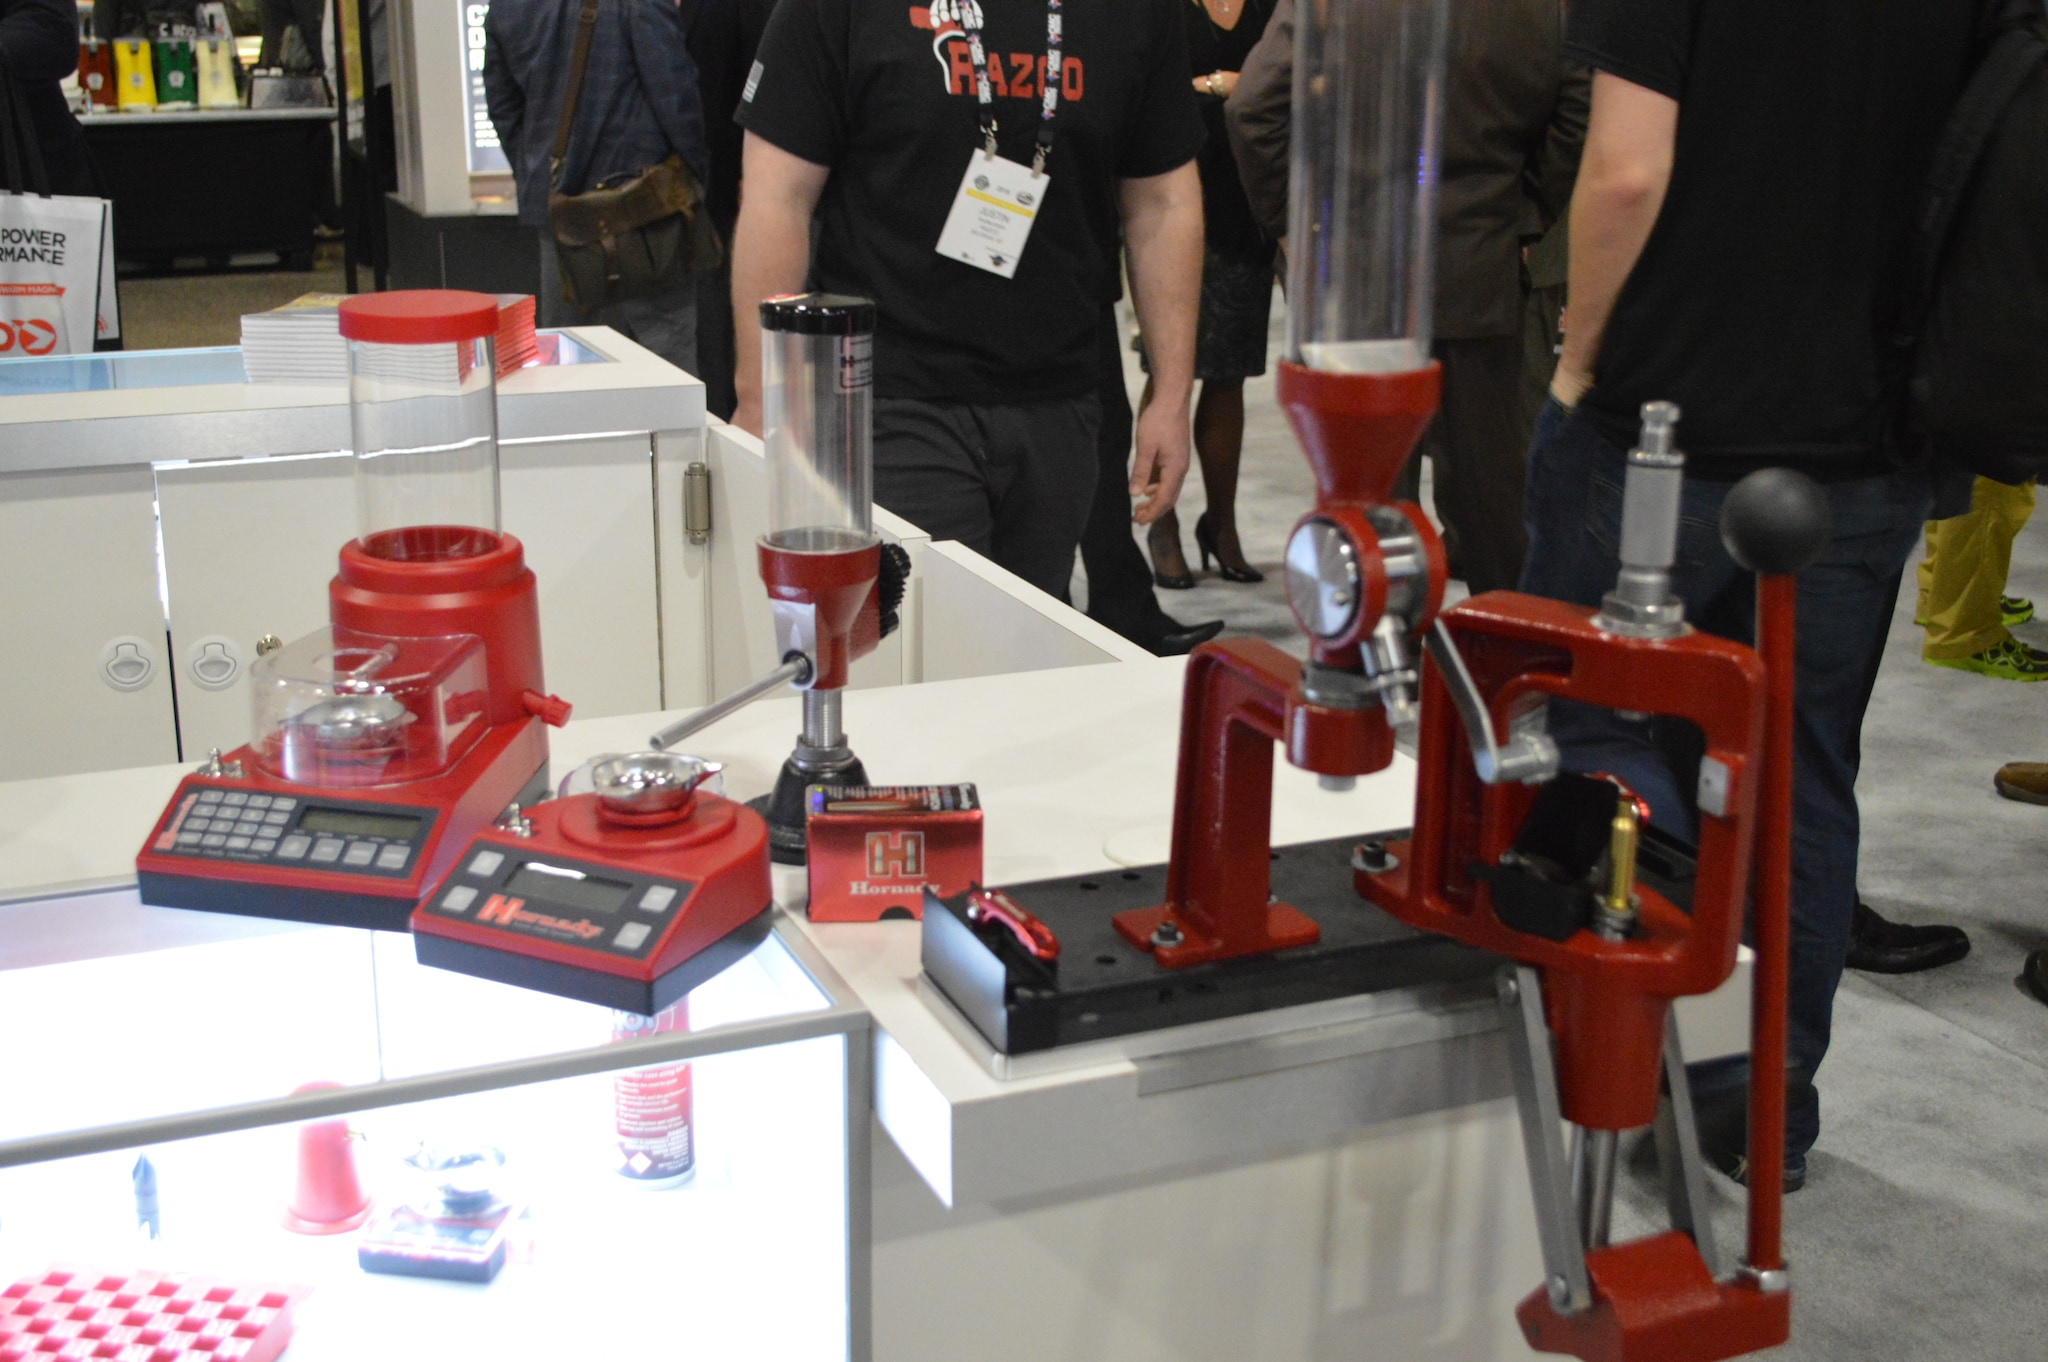 Hornady expanded its collection of big red reloading gear at SHOT with a new, portable, battery operated Vibratory Trickler, Rotary Tumbler, and Rotary Media Sifter. (Photo: Kristin Alberts/Guns.com)